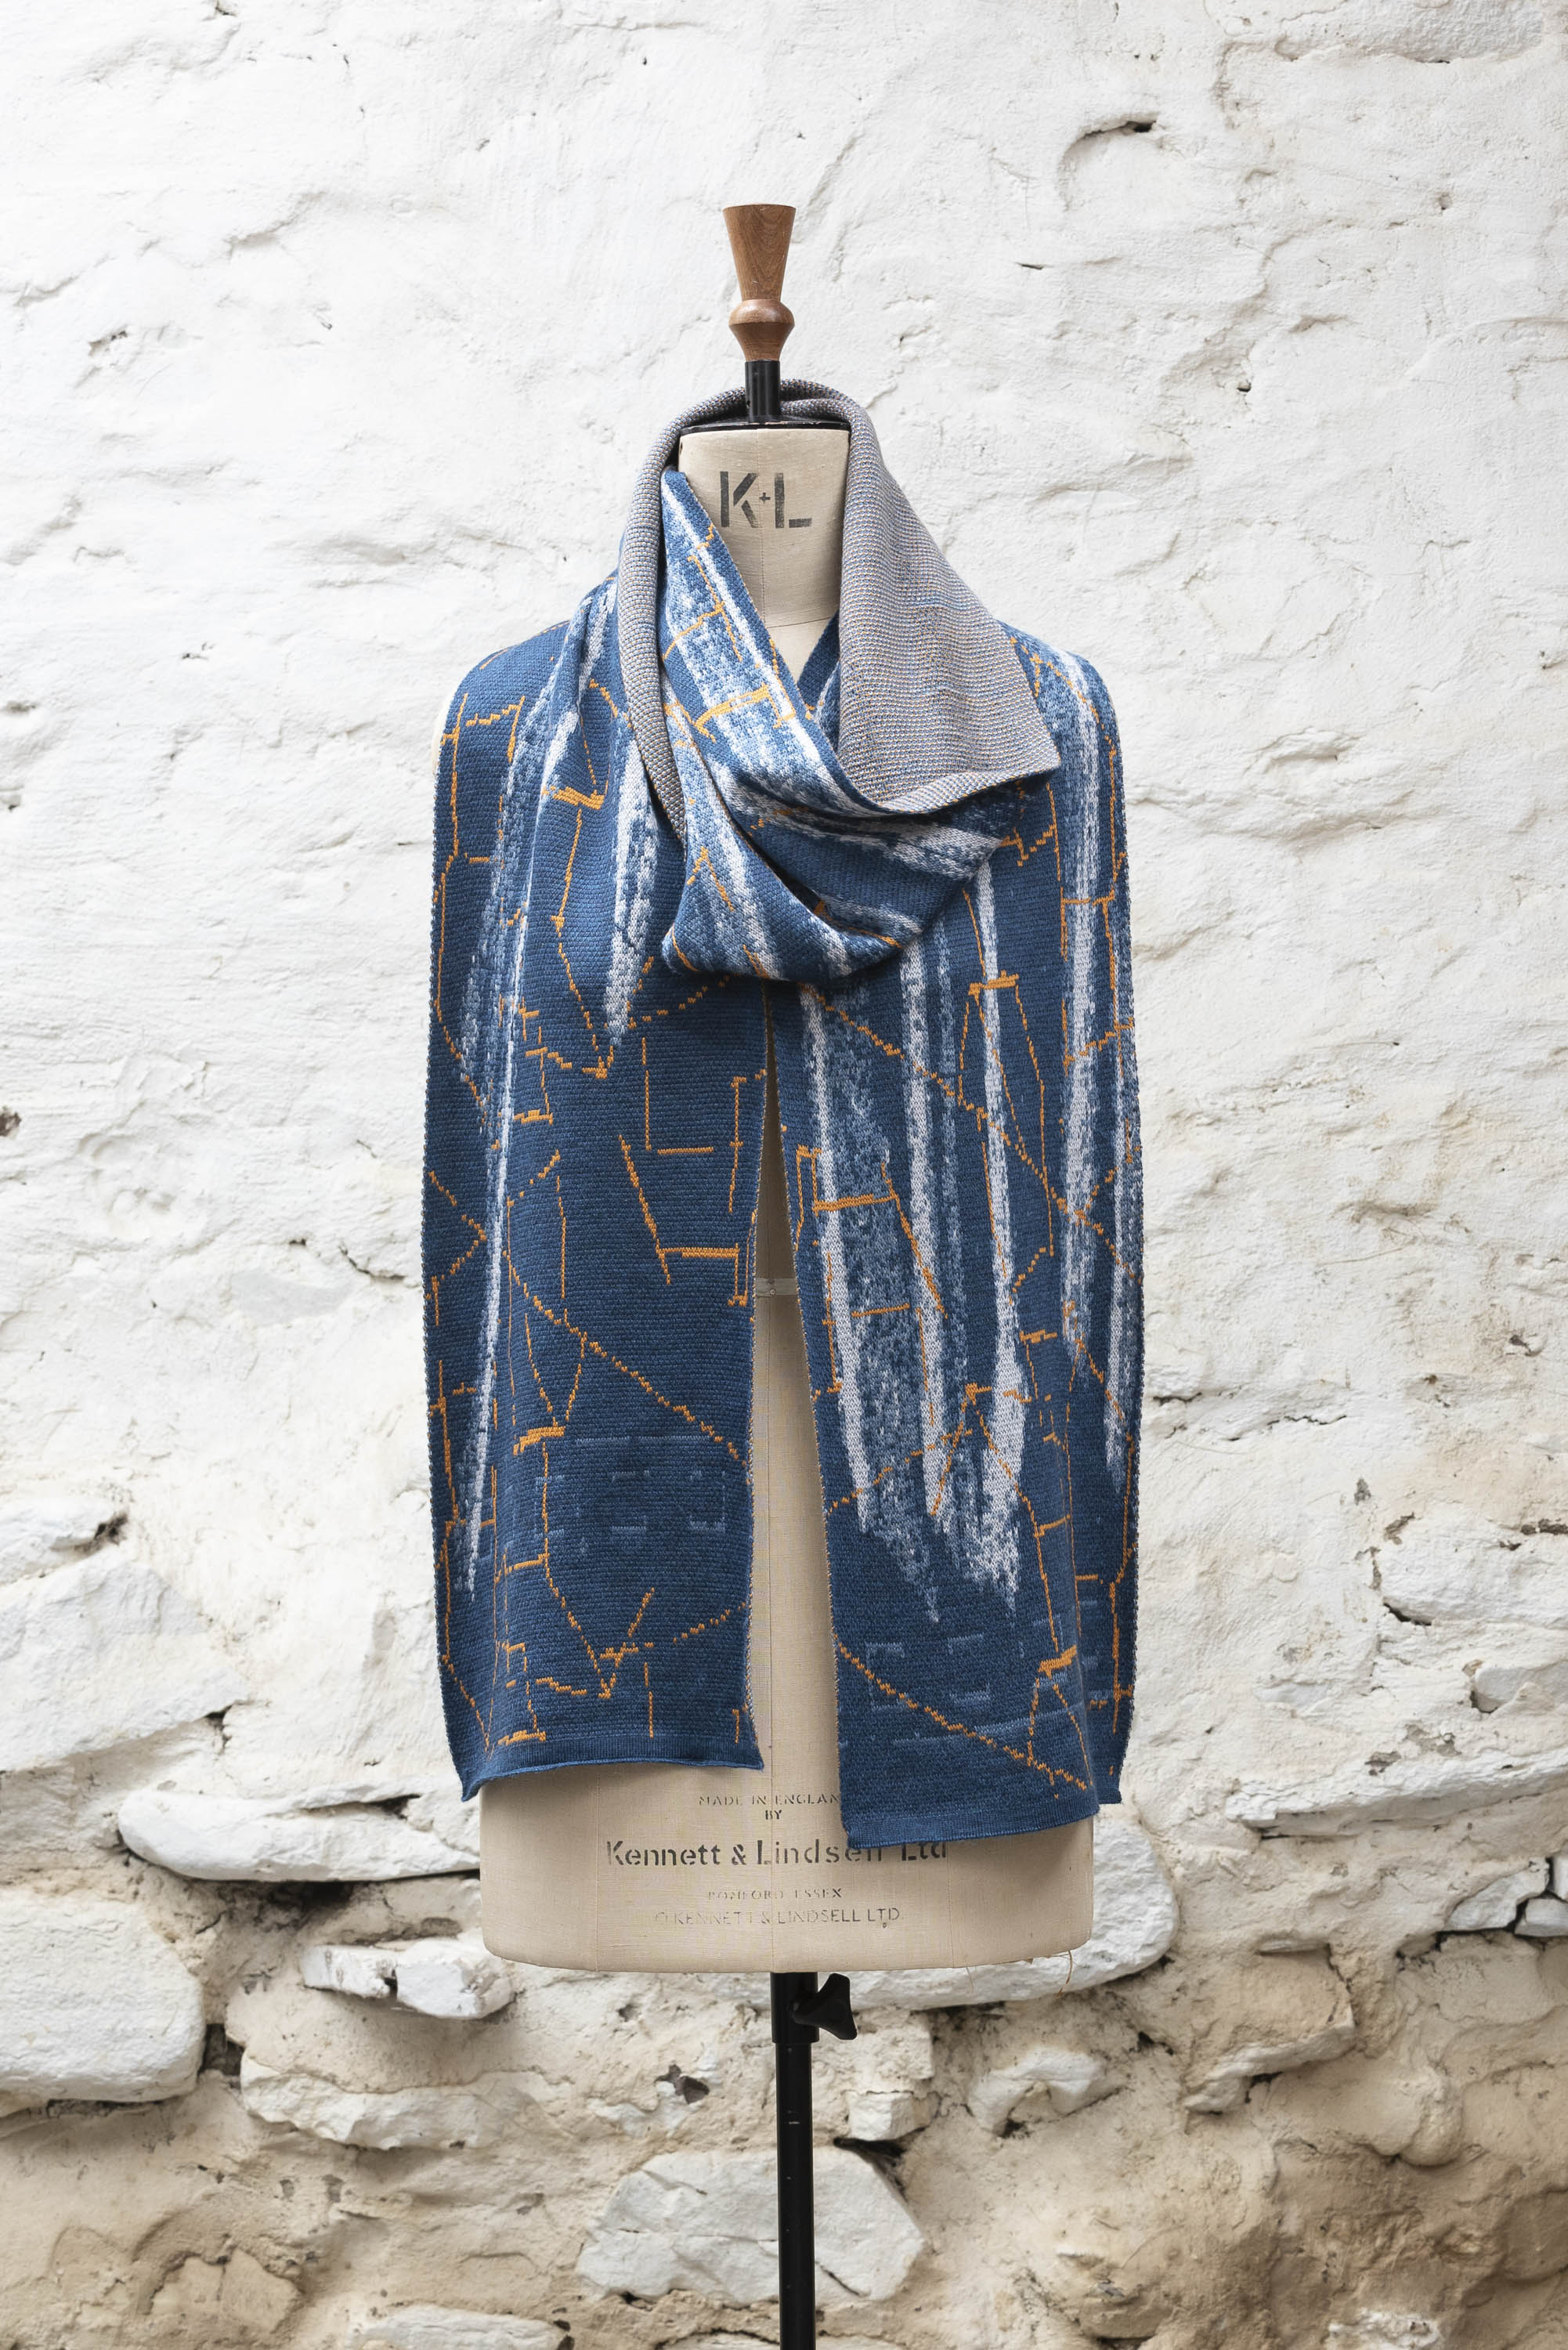 Contemporary Shetland knitted scarf in abstract design of blues and greys with orange highlights